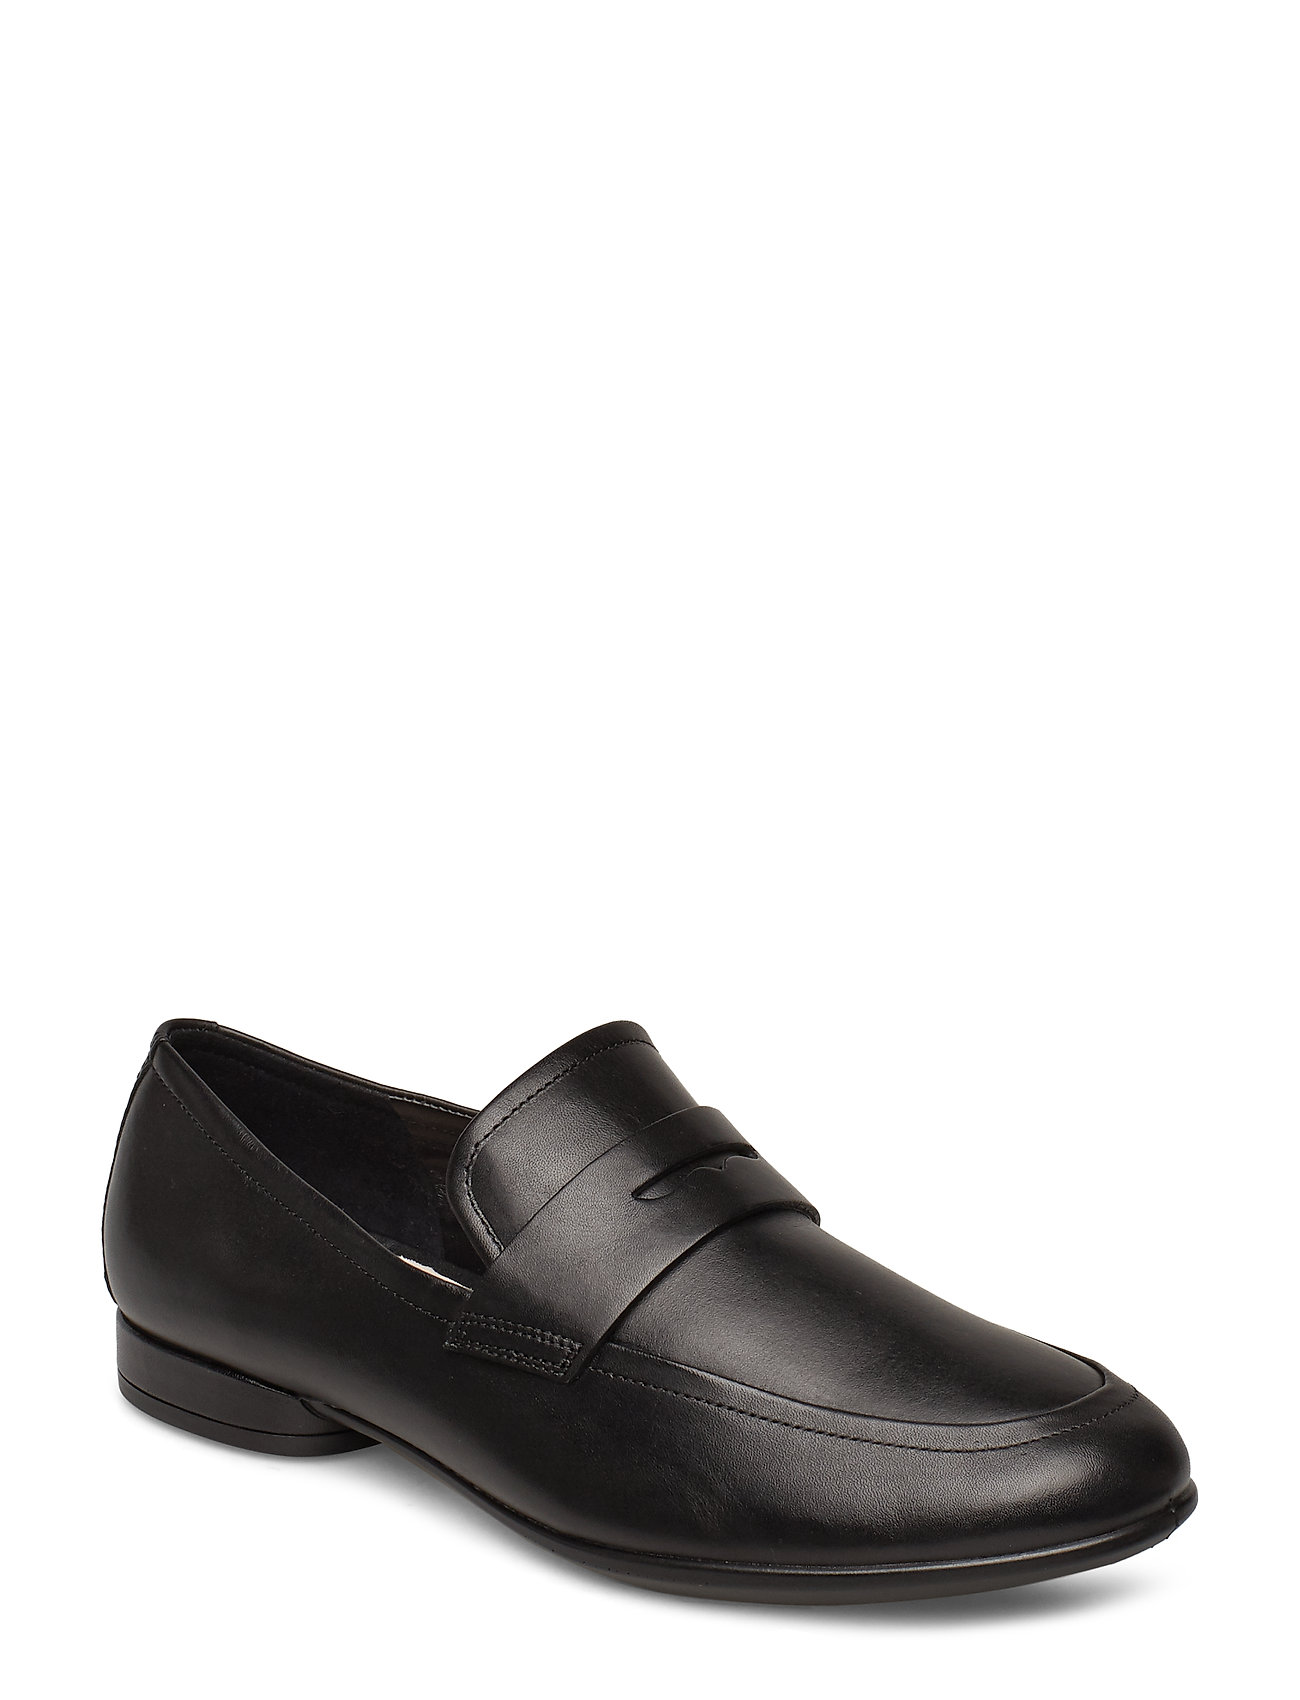 Image of Anine Loafers Flade Sko Sort ECCO (3195056499)